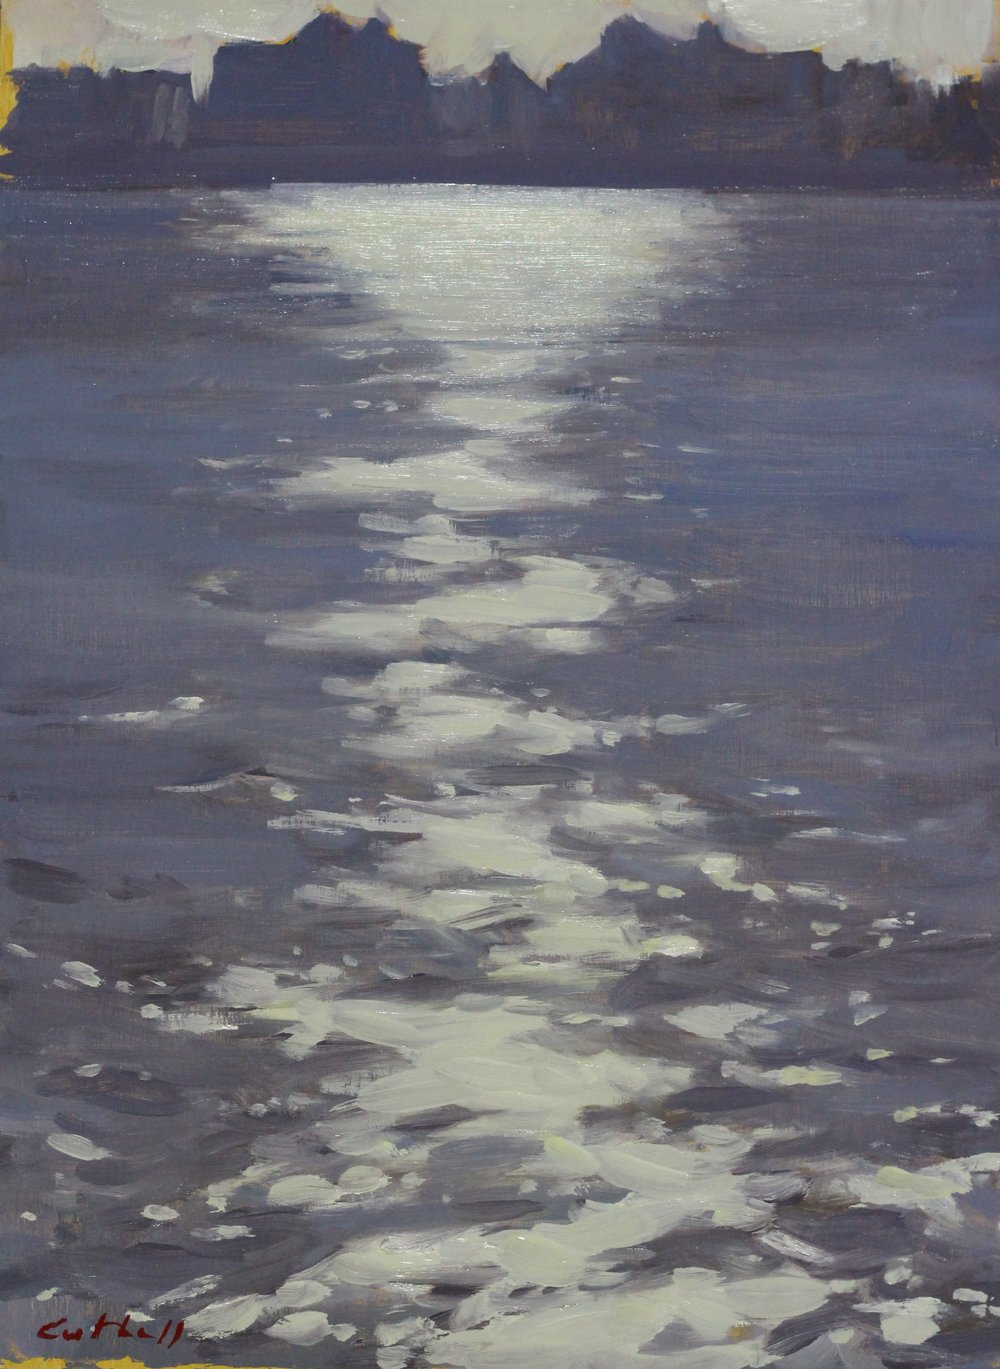 Thames,  Oil on Panel, 35 x 25cm, 2016